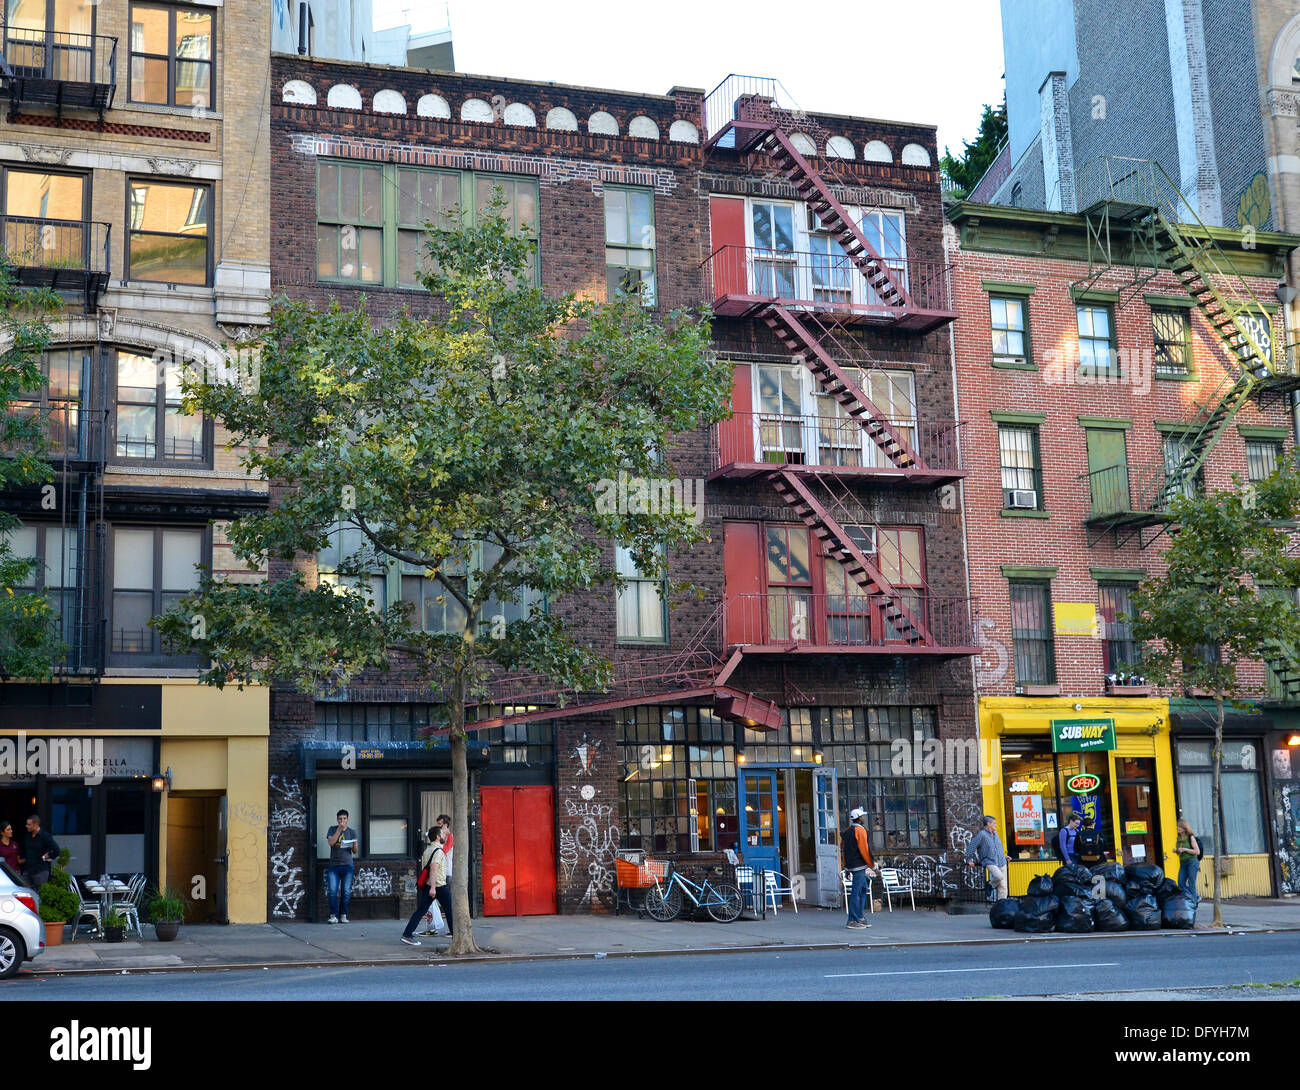 The Bowery Hotel Stock Photos & The Bowery Hotel Stock Images - Alamy